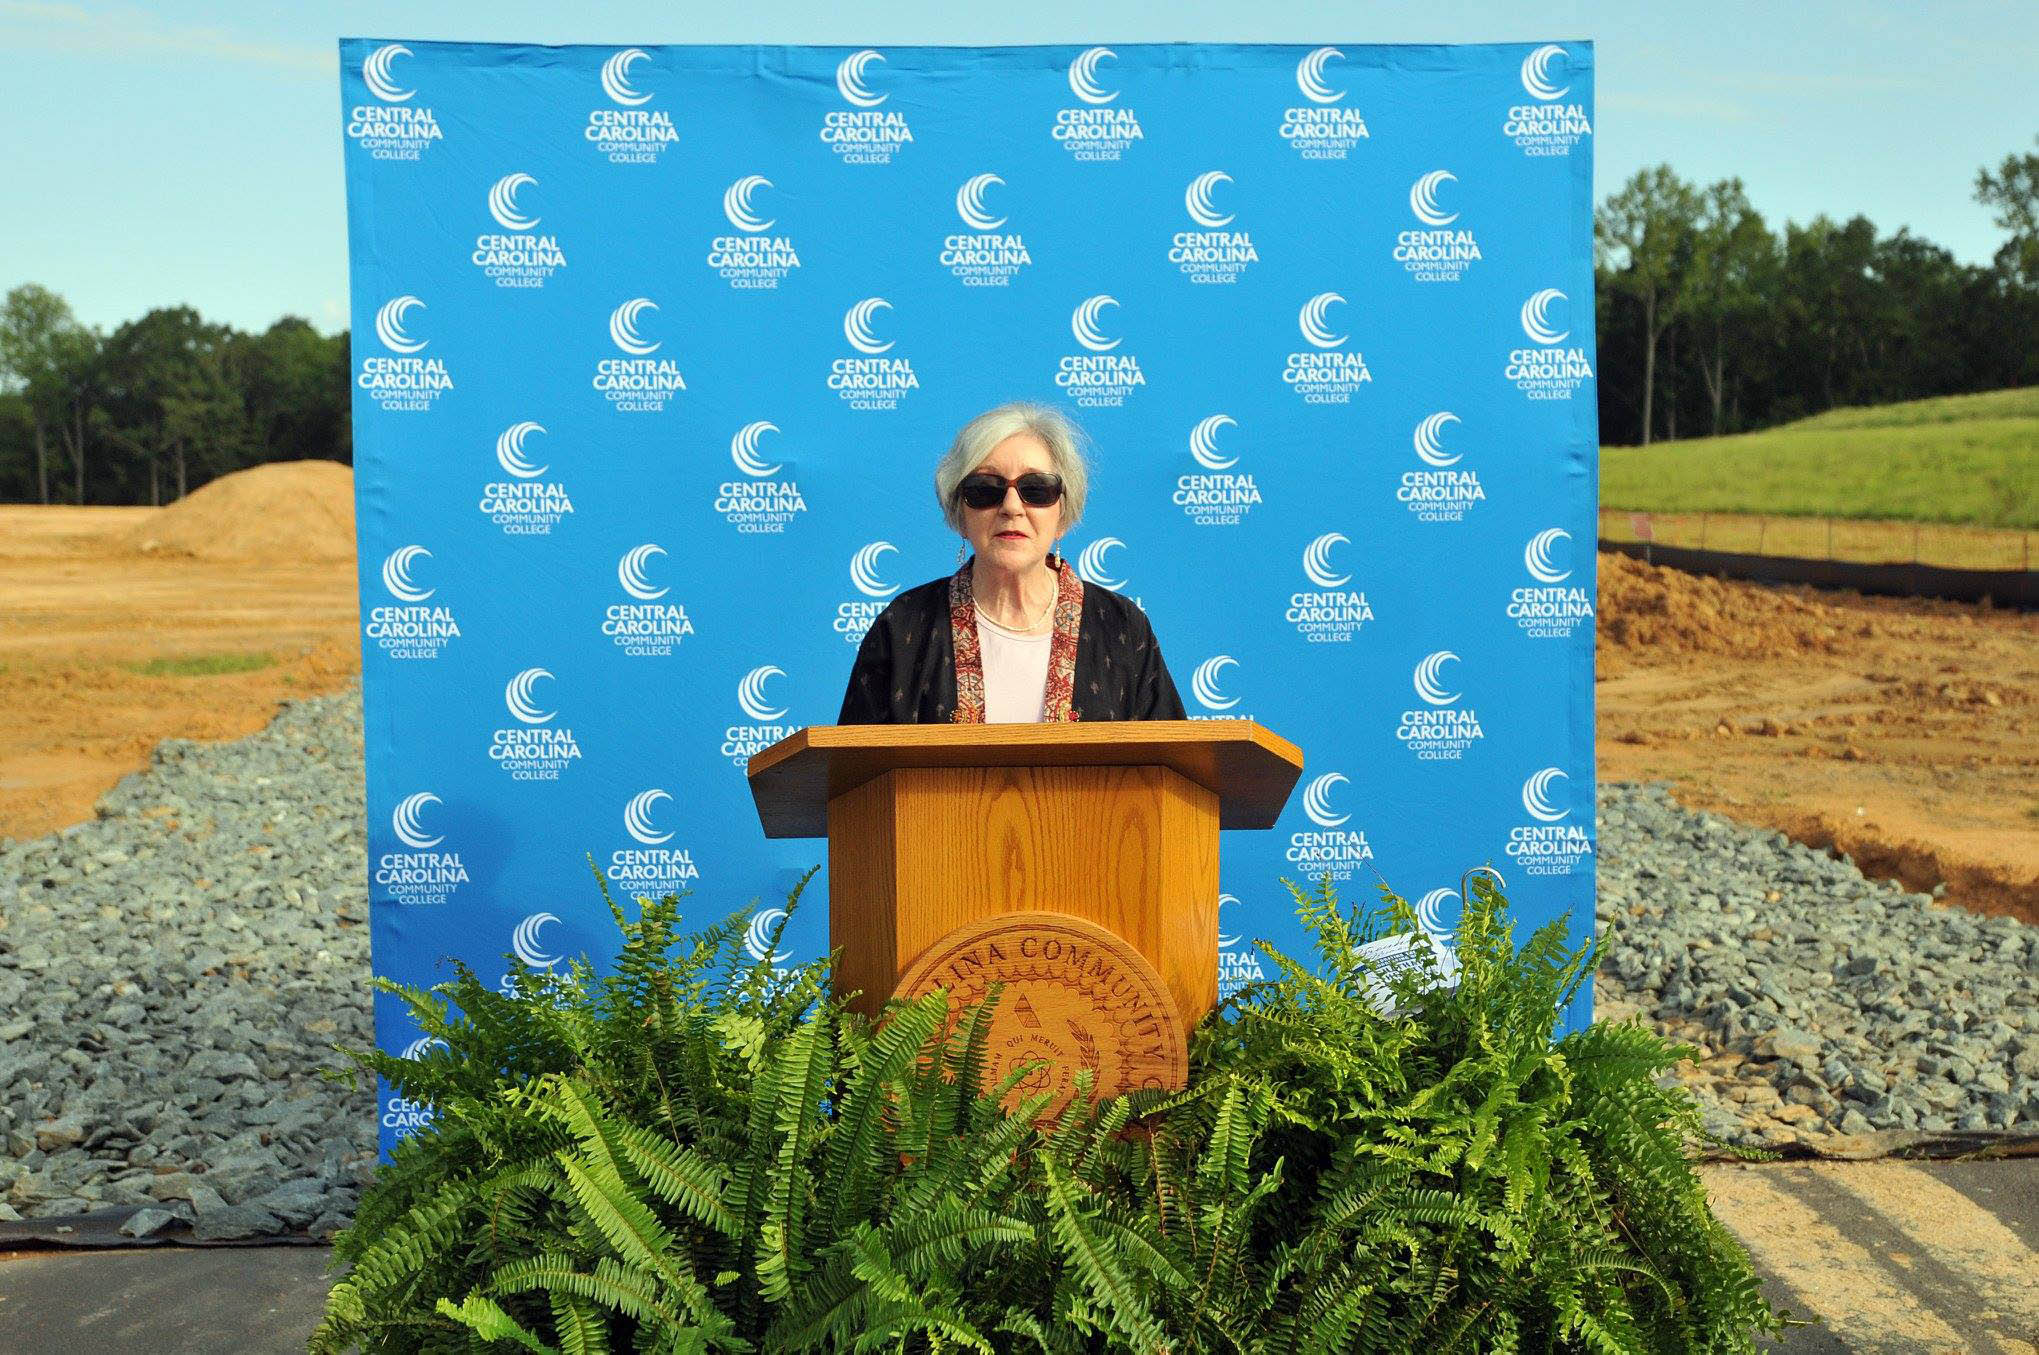 Click to enlarge,  Diana Hales, Chair of the Chatham County Board of Commissioners, spoke to attendees at the college's groundbreaking ceremony on Aug. 22 for the new Chatham Health Sciences Center.